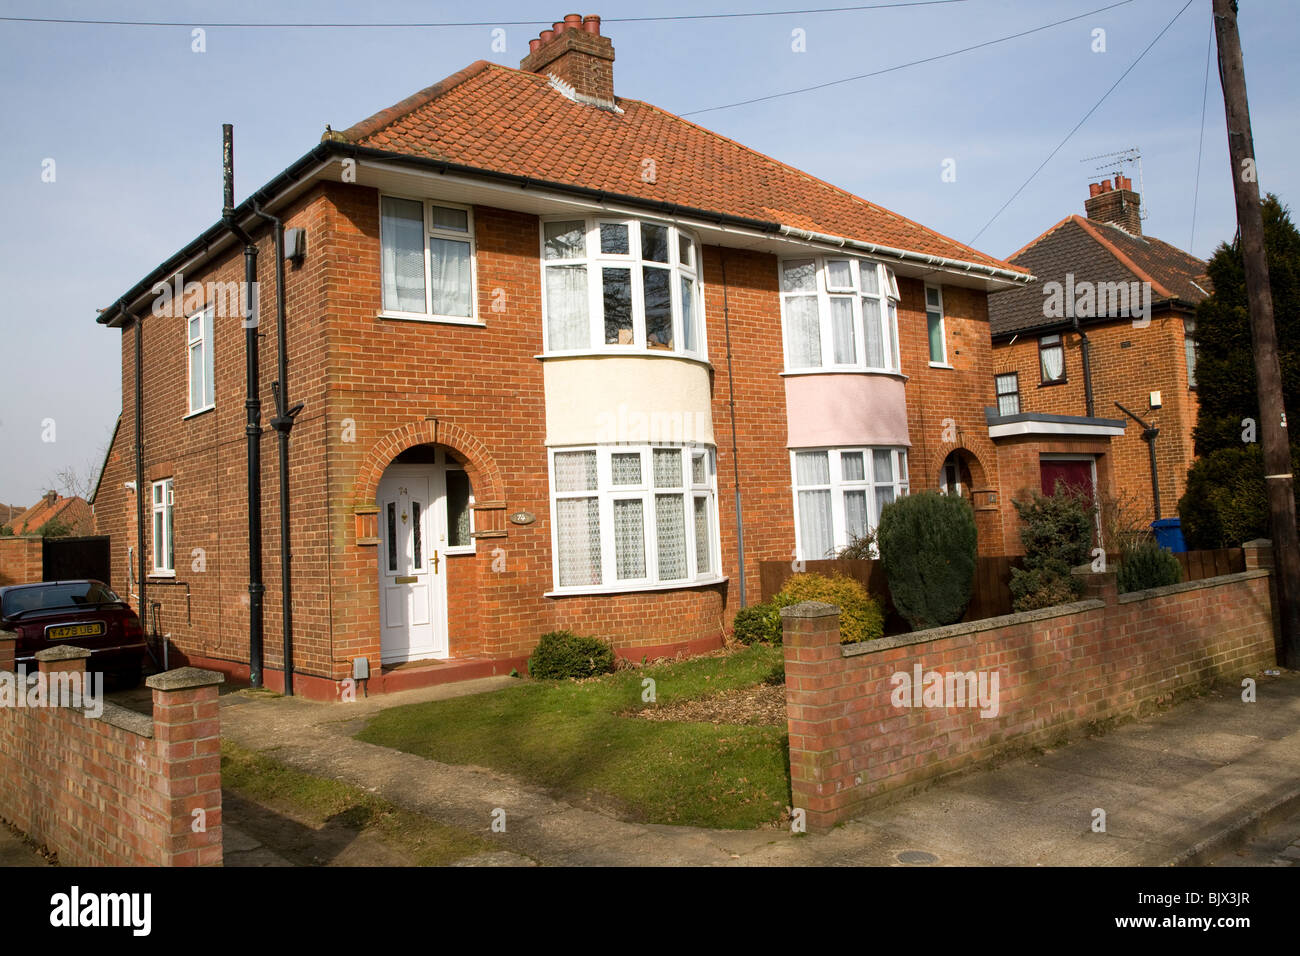 1930s semi detached suburban houses, Ipswich, Suffolk